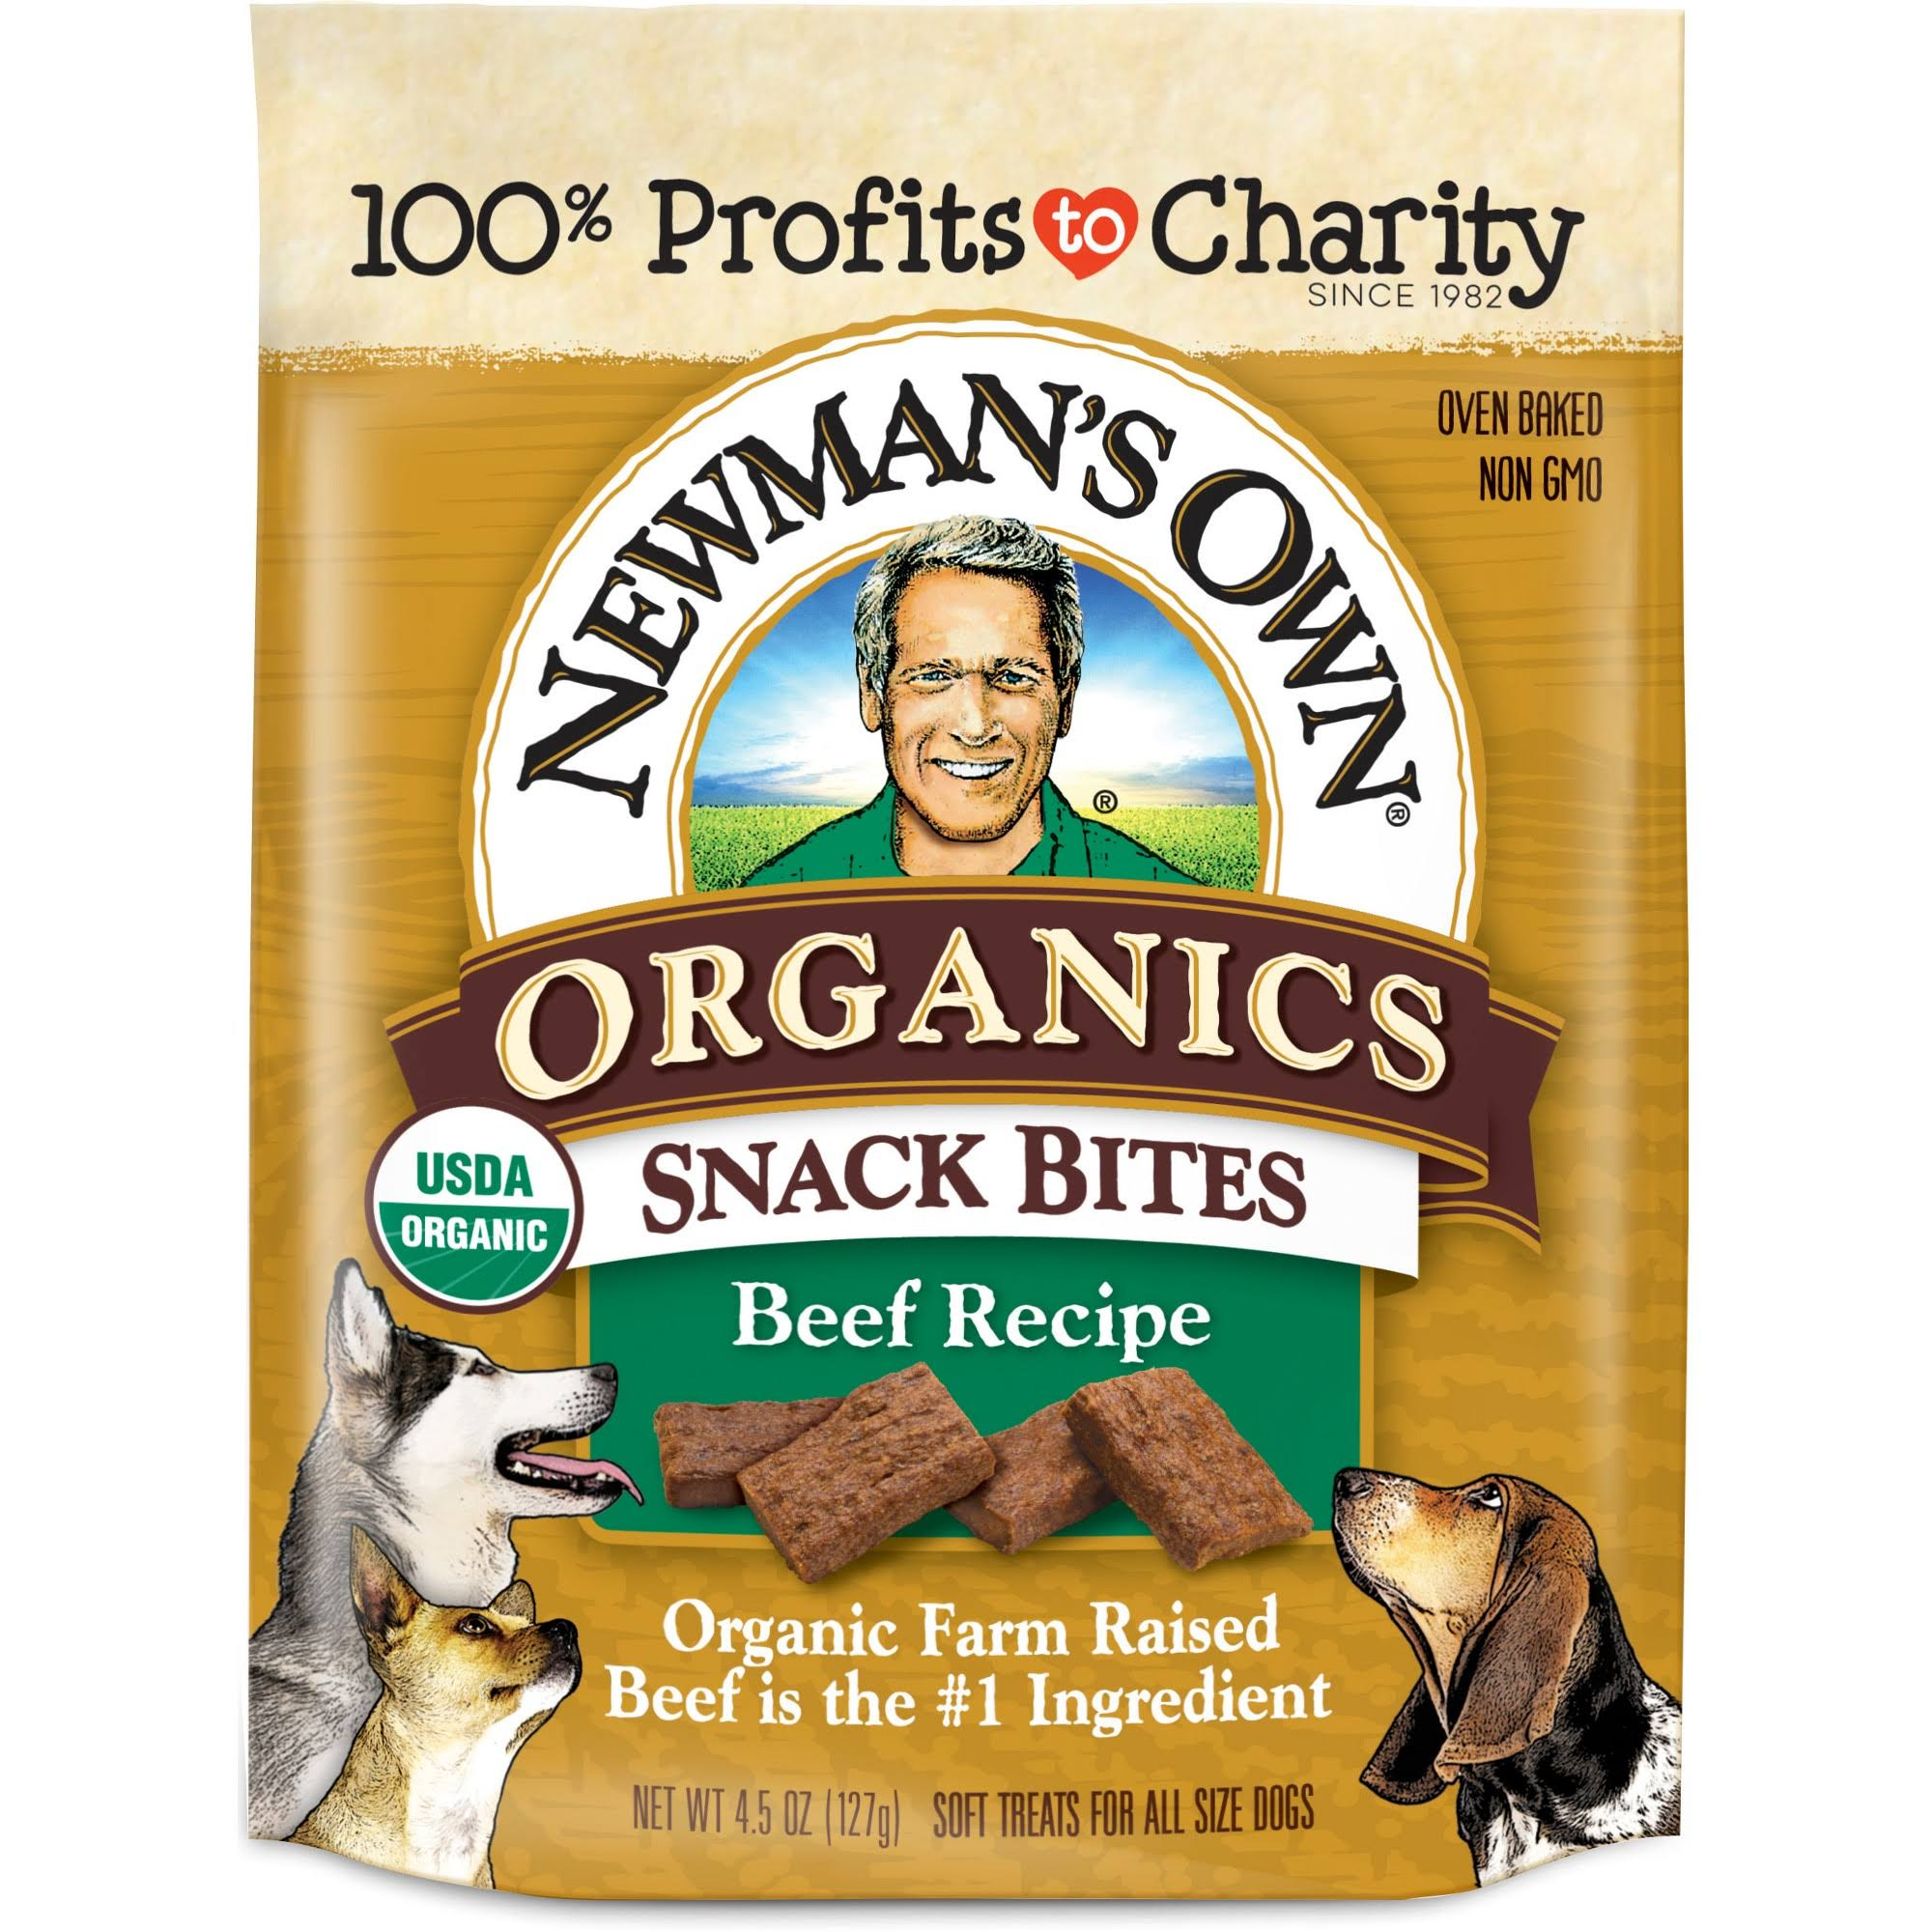 Newmans Own Organics Dog Treats, Beef Recipe, Oven Baked - 4.5 oz